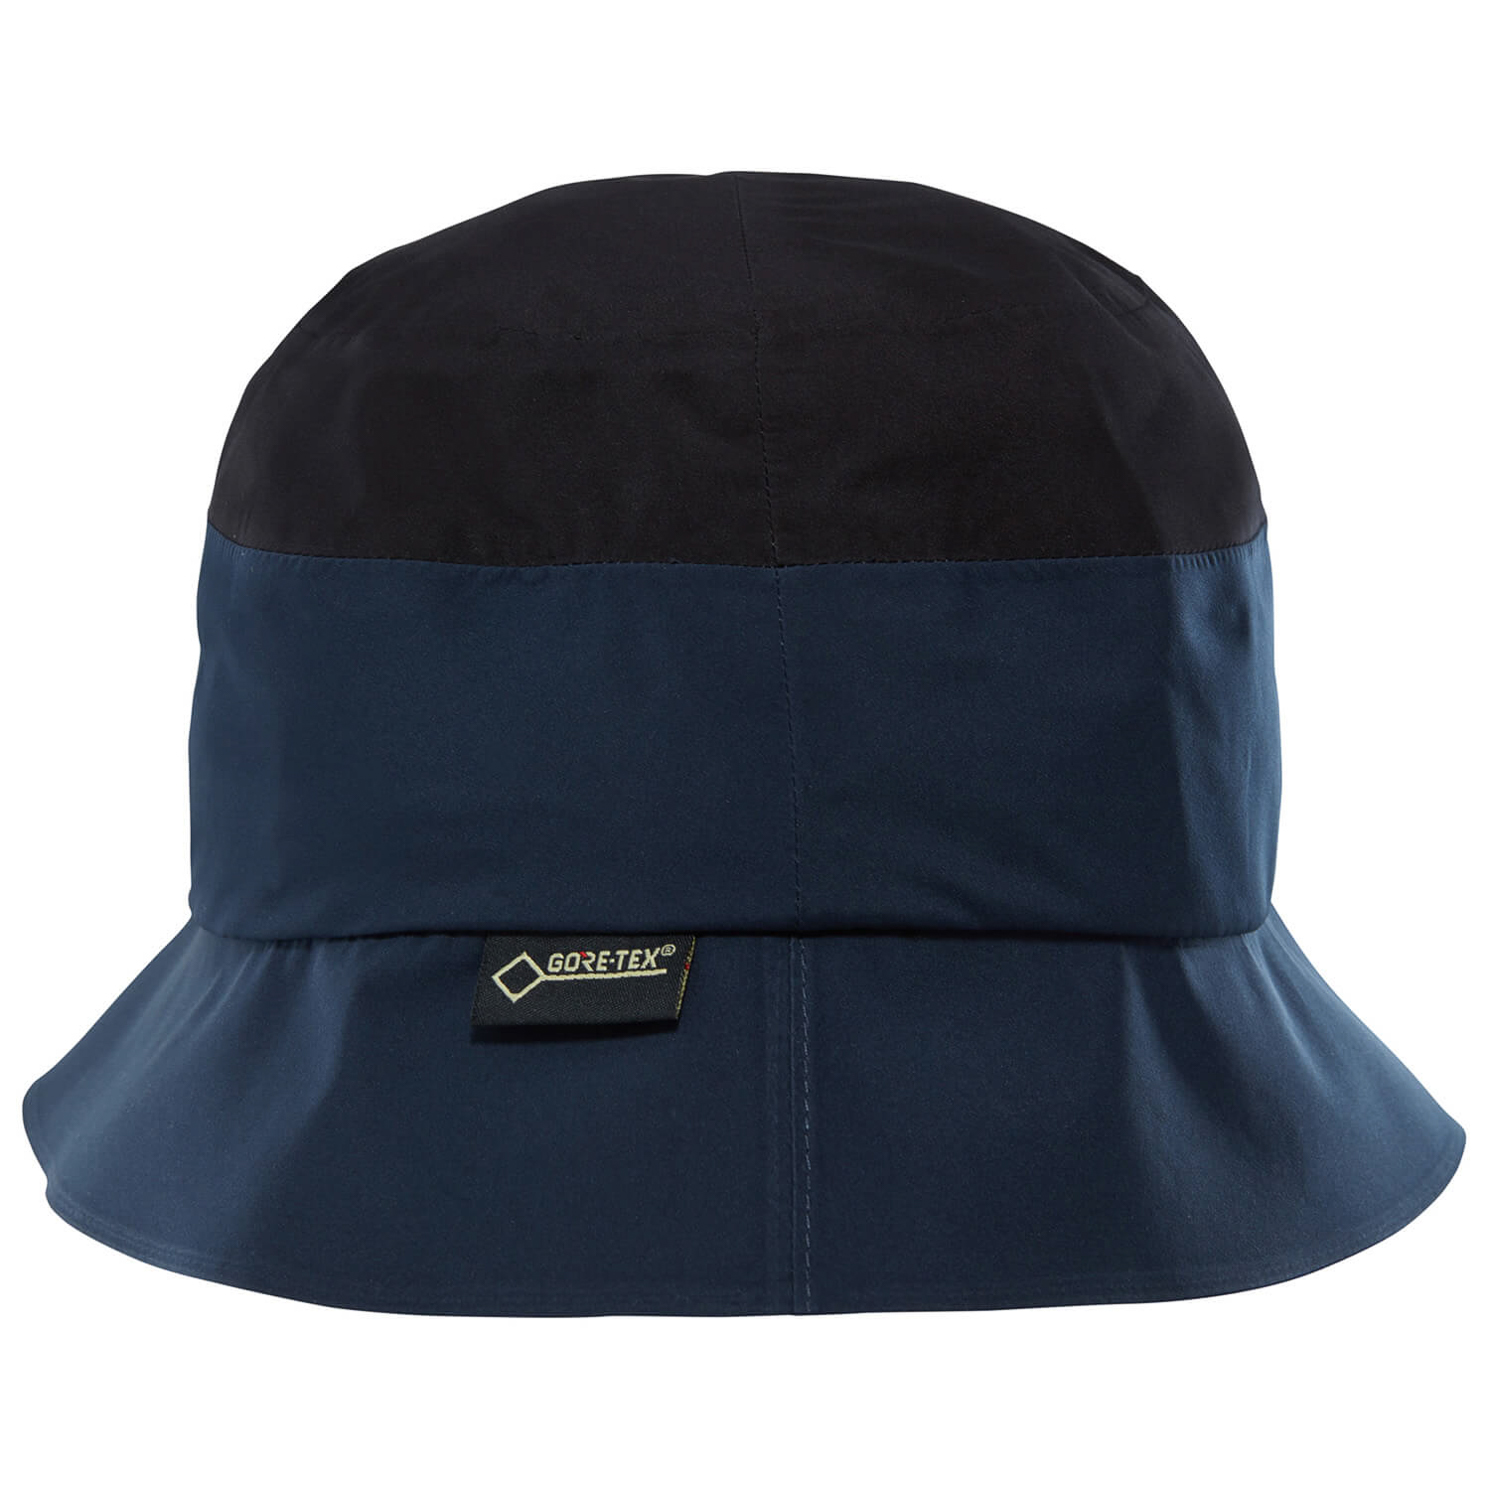 14a56430c1f The North Face - Goretex Bucket Hat - Hat ...